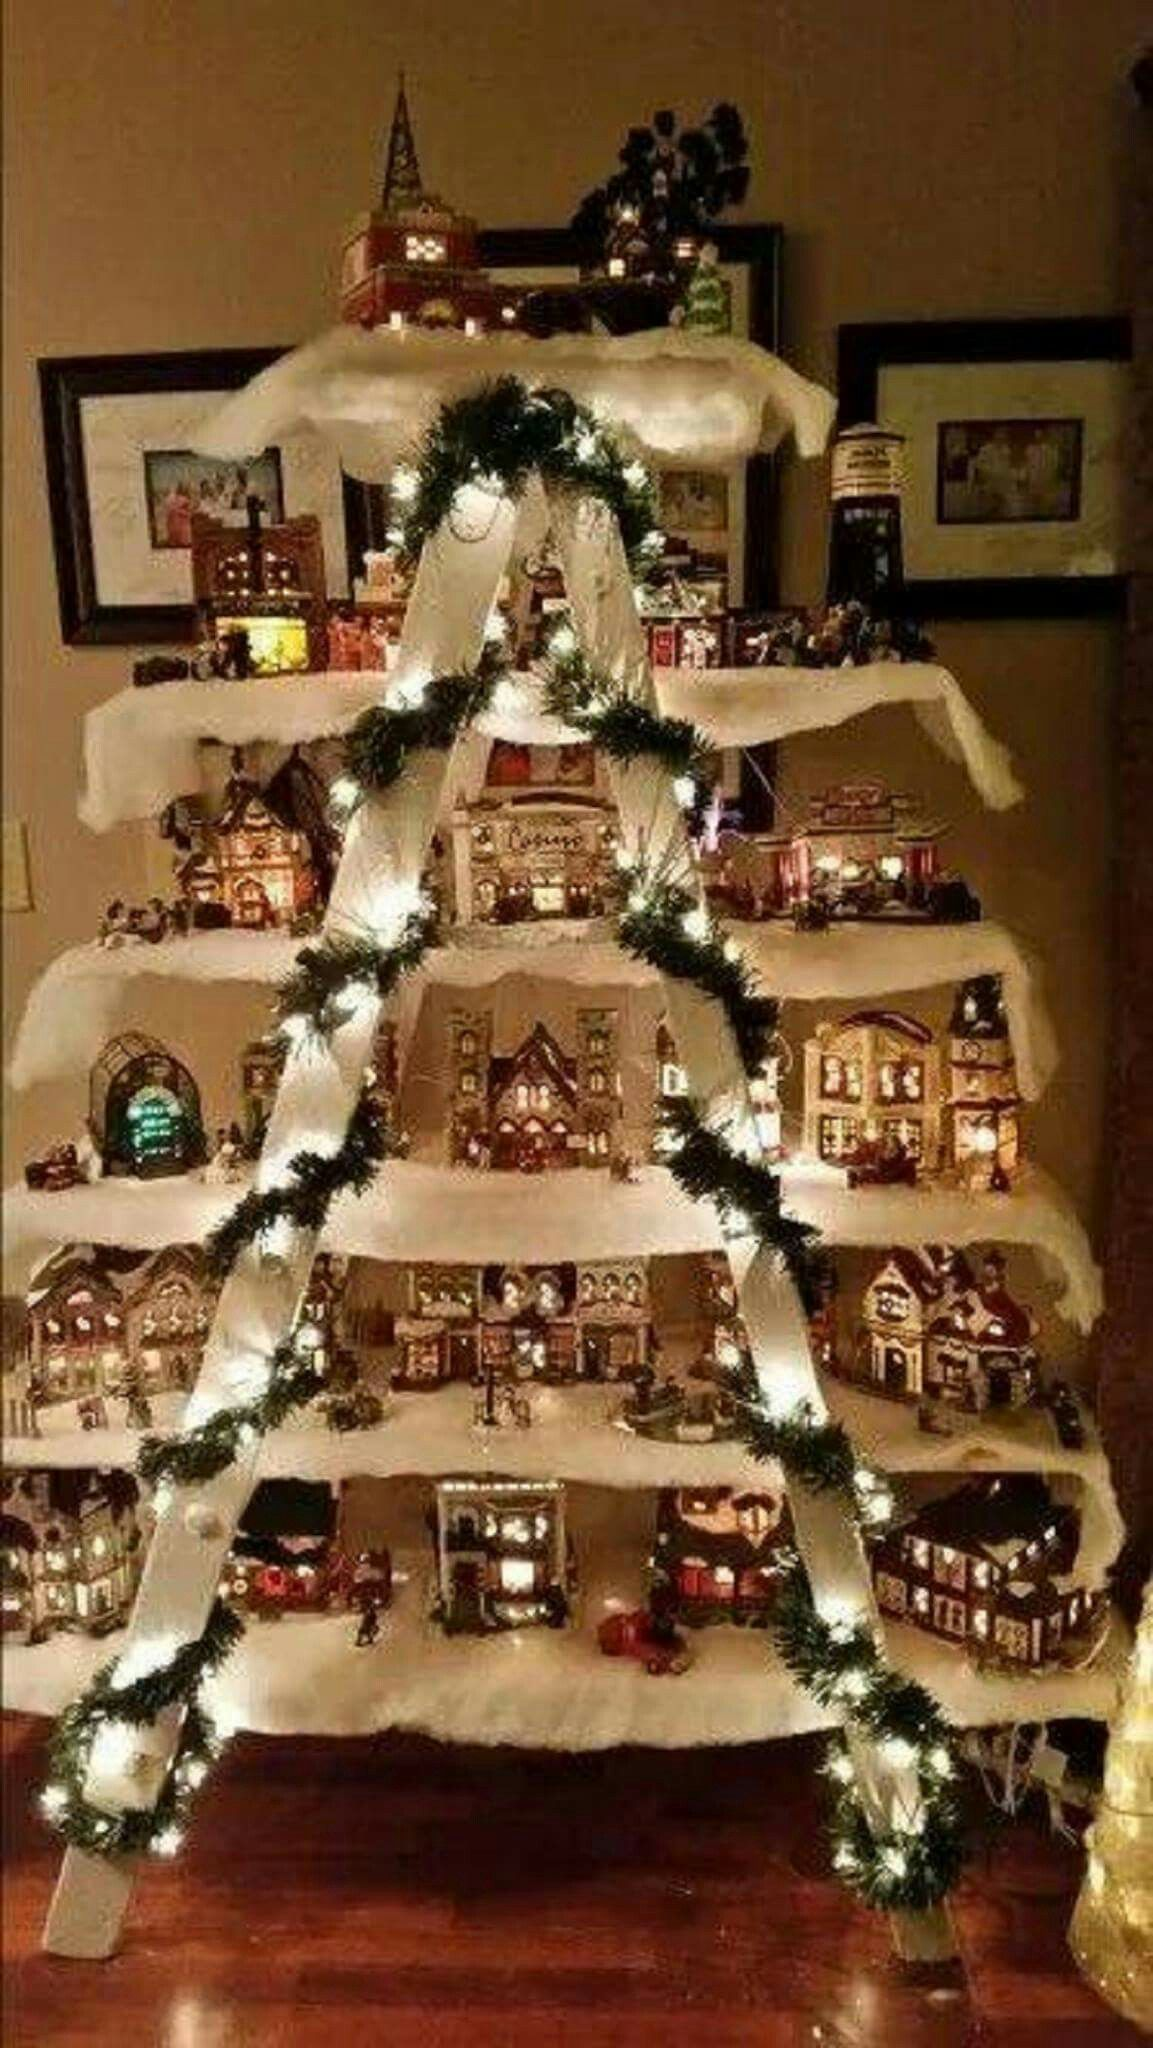 Christmas Village Displayed on shelves on a ladder